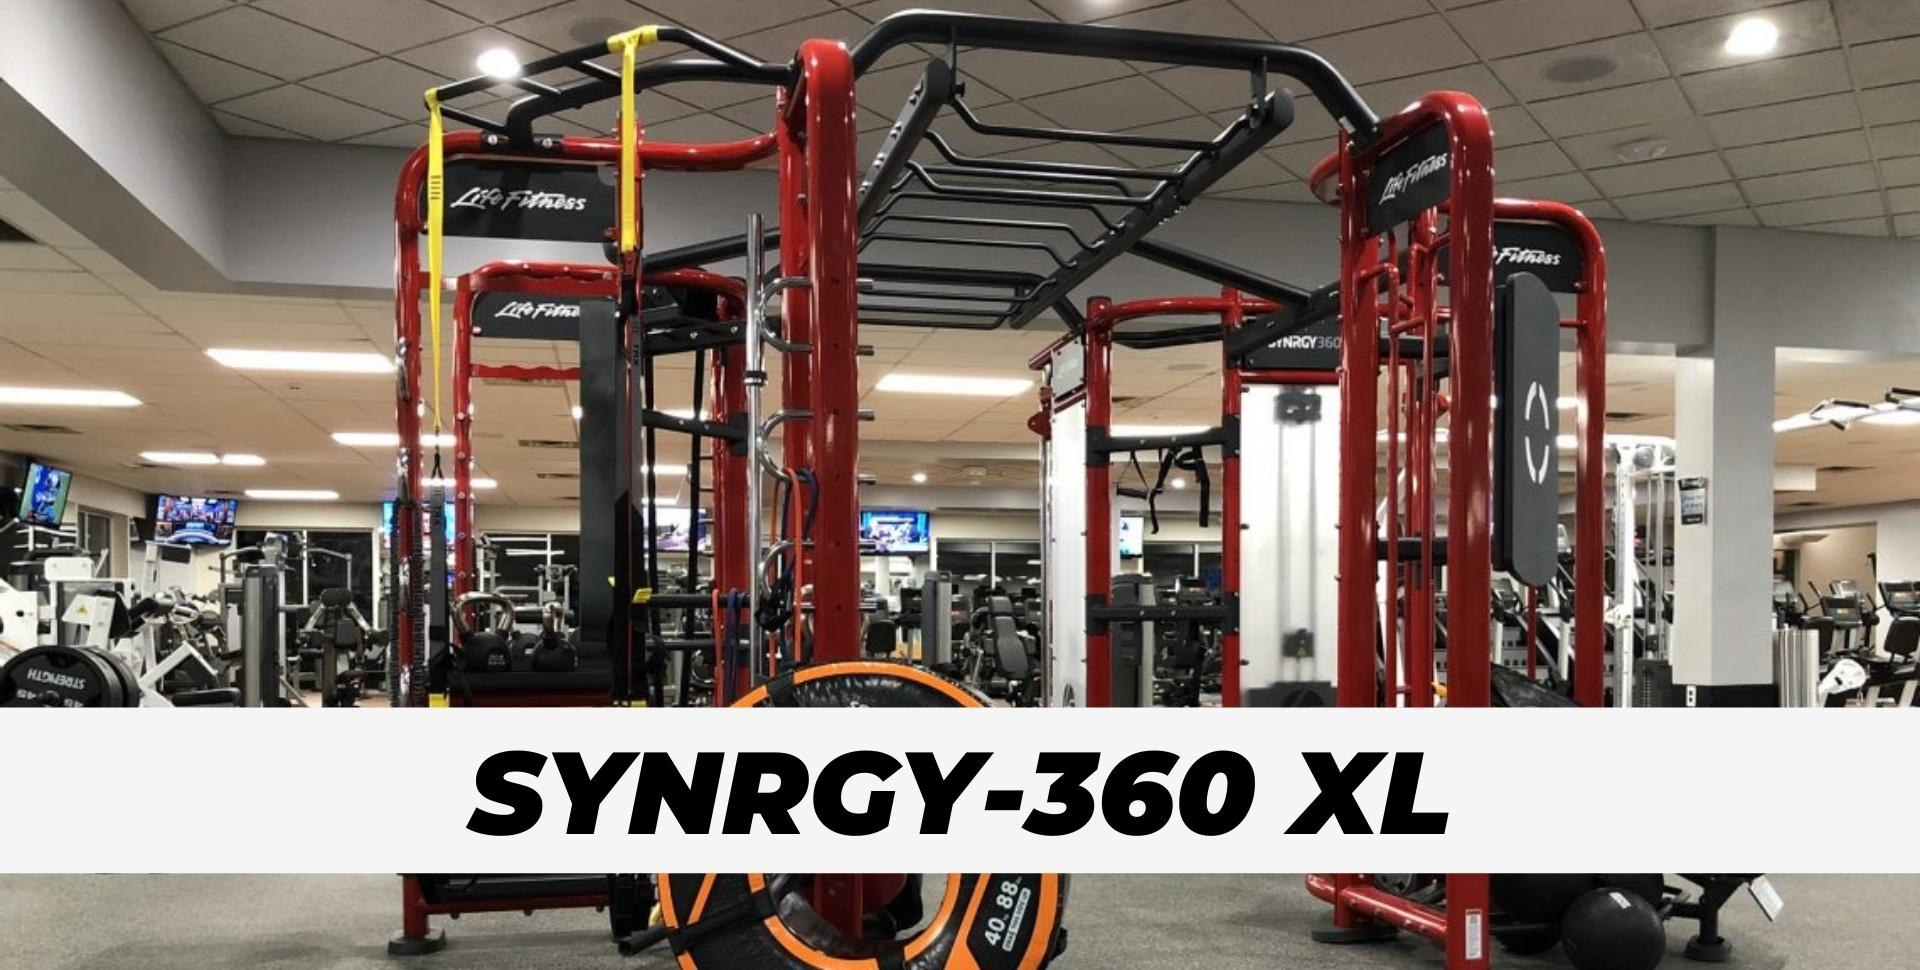 Synrgy 360 XL cable motion at gym for Potfolio Pic